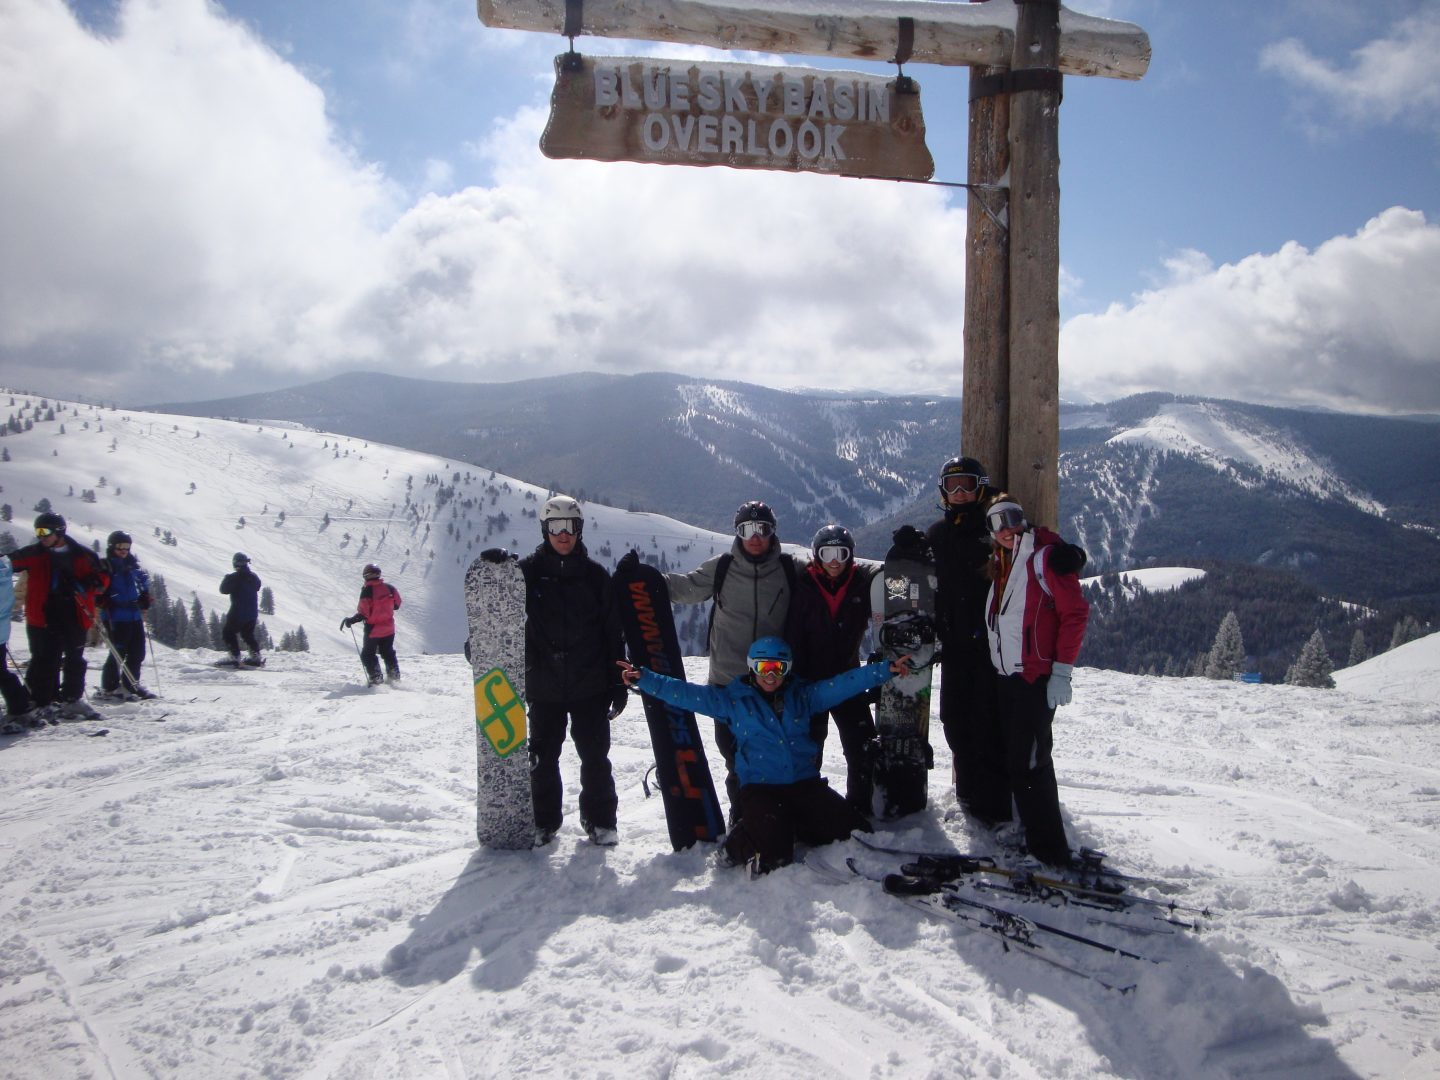 Why I wont say goodbye - photo of us with our 'urban family' while skiing together